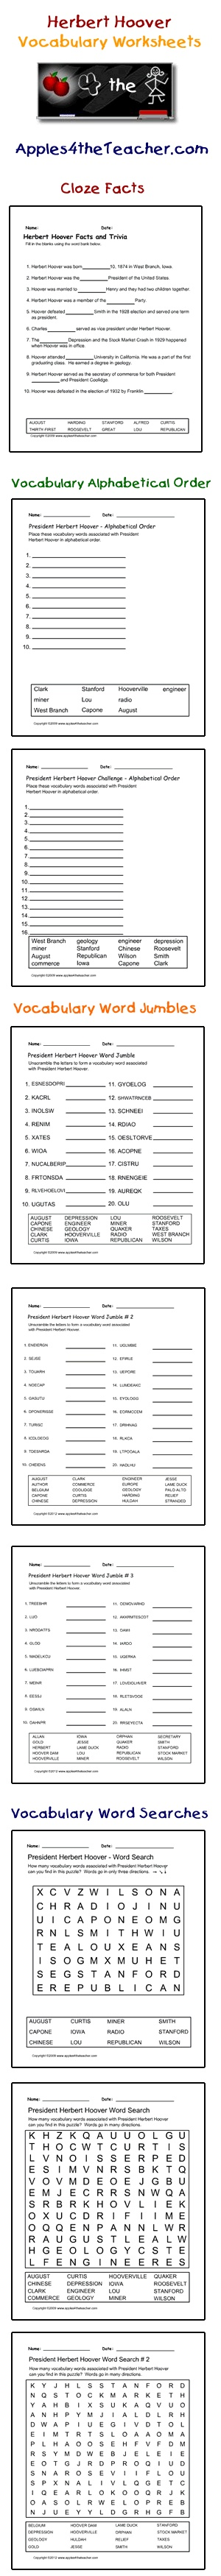 President Herbert Hoover interactive vocabulary words: cloze facts activity page, alphabetical order worksheets, word jumble worksheets and word search puzzles.